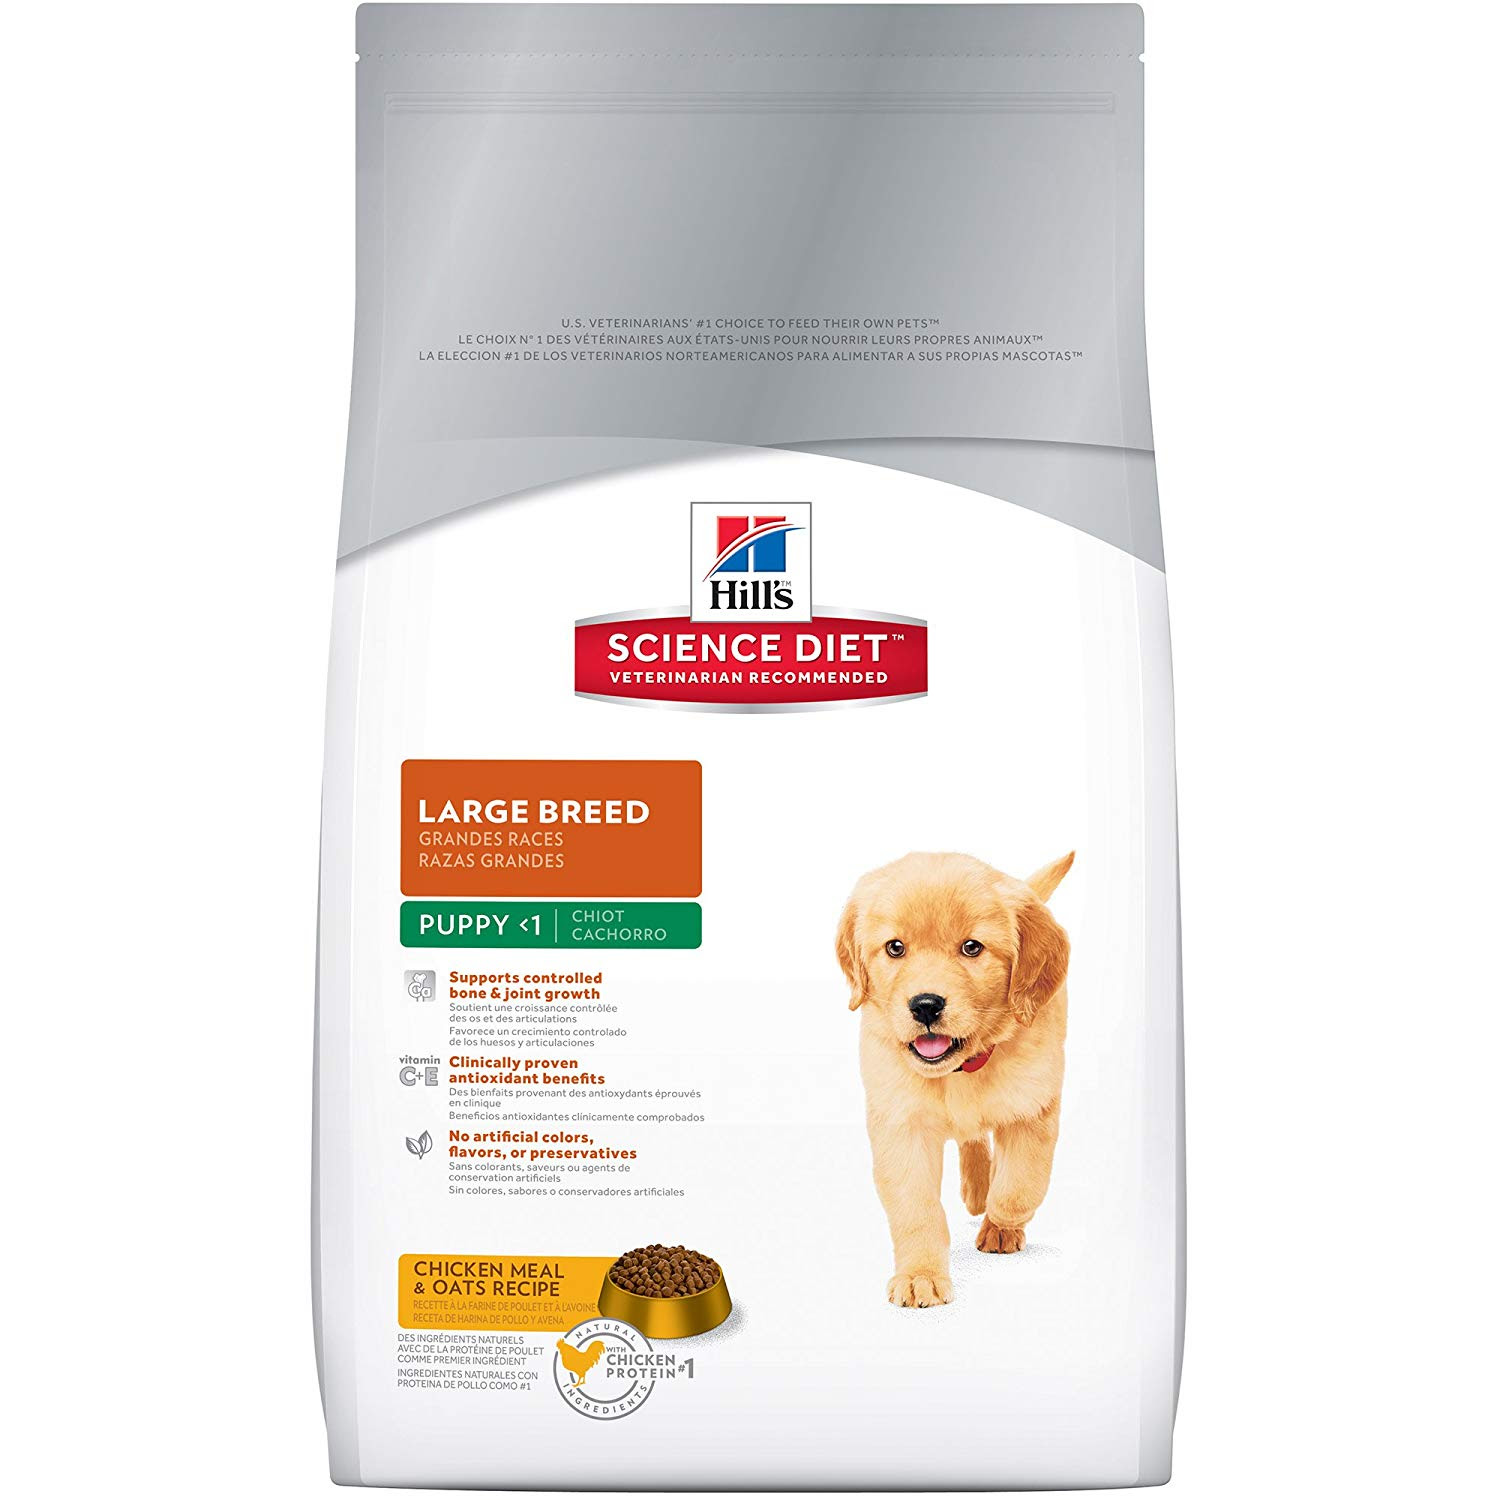 Hill's Science Diet Puppy Large Breed 15kg - Prescription Food